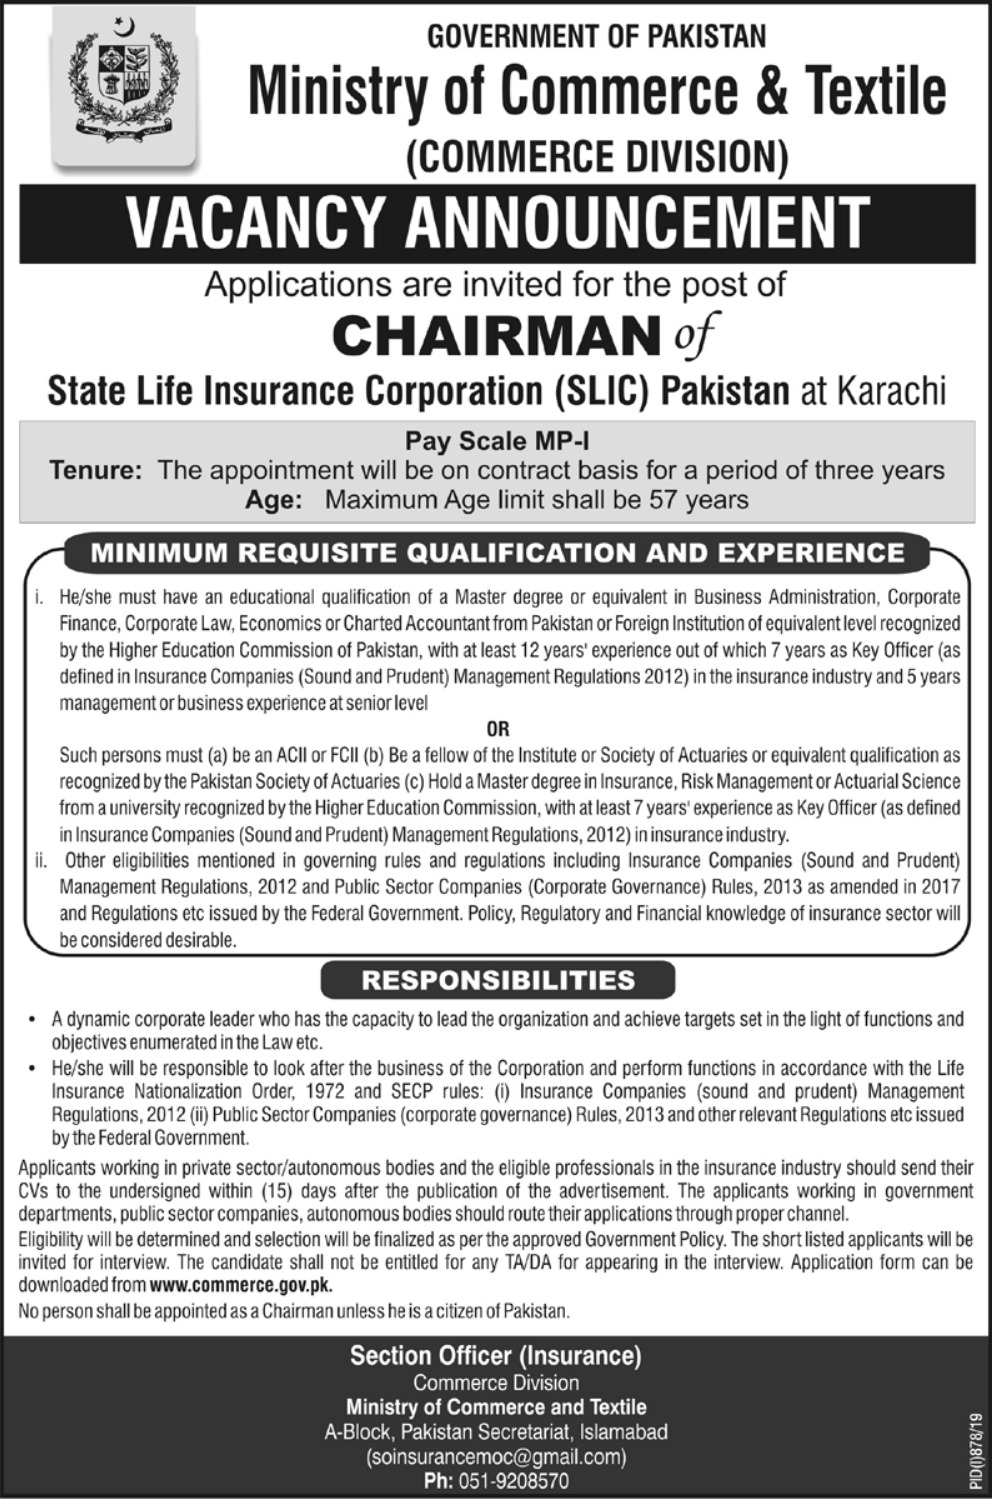 Ministry of Commerce & Textile Jobs 2019 Government of Pakistan